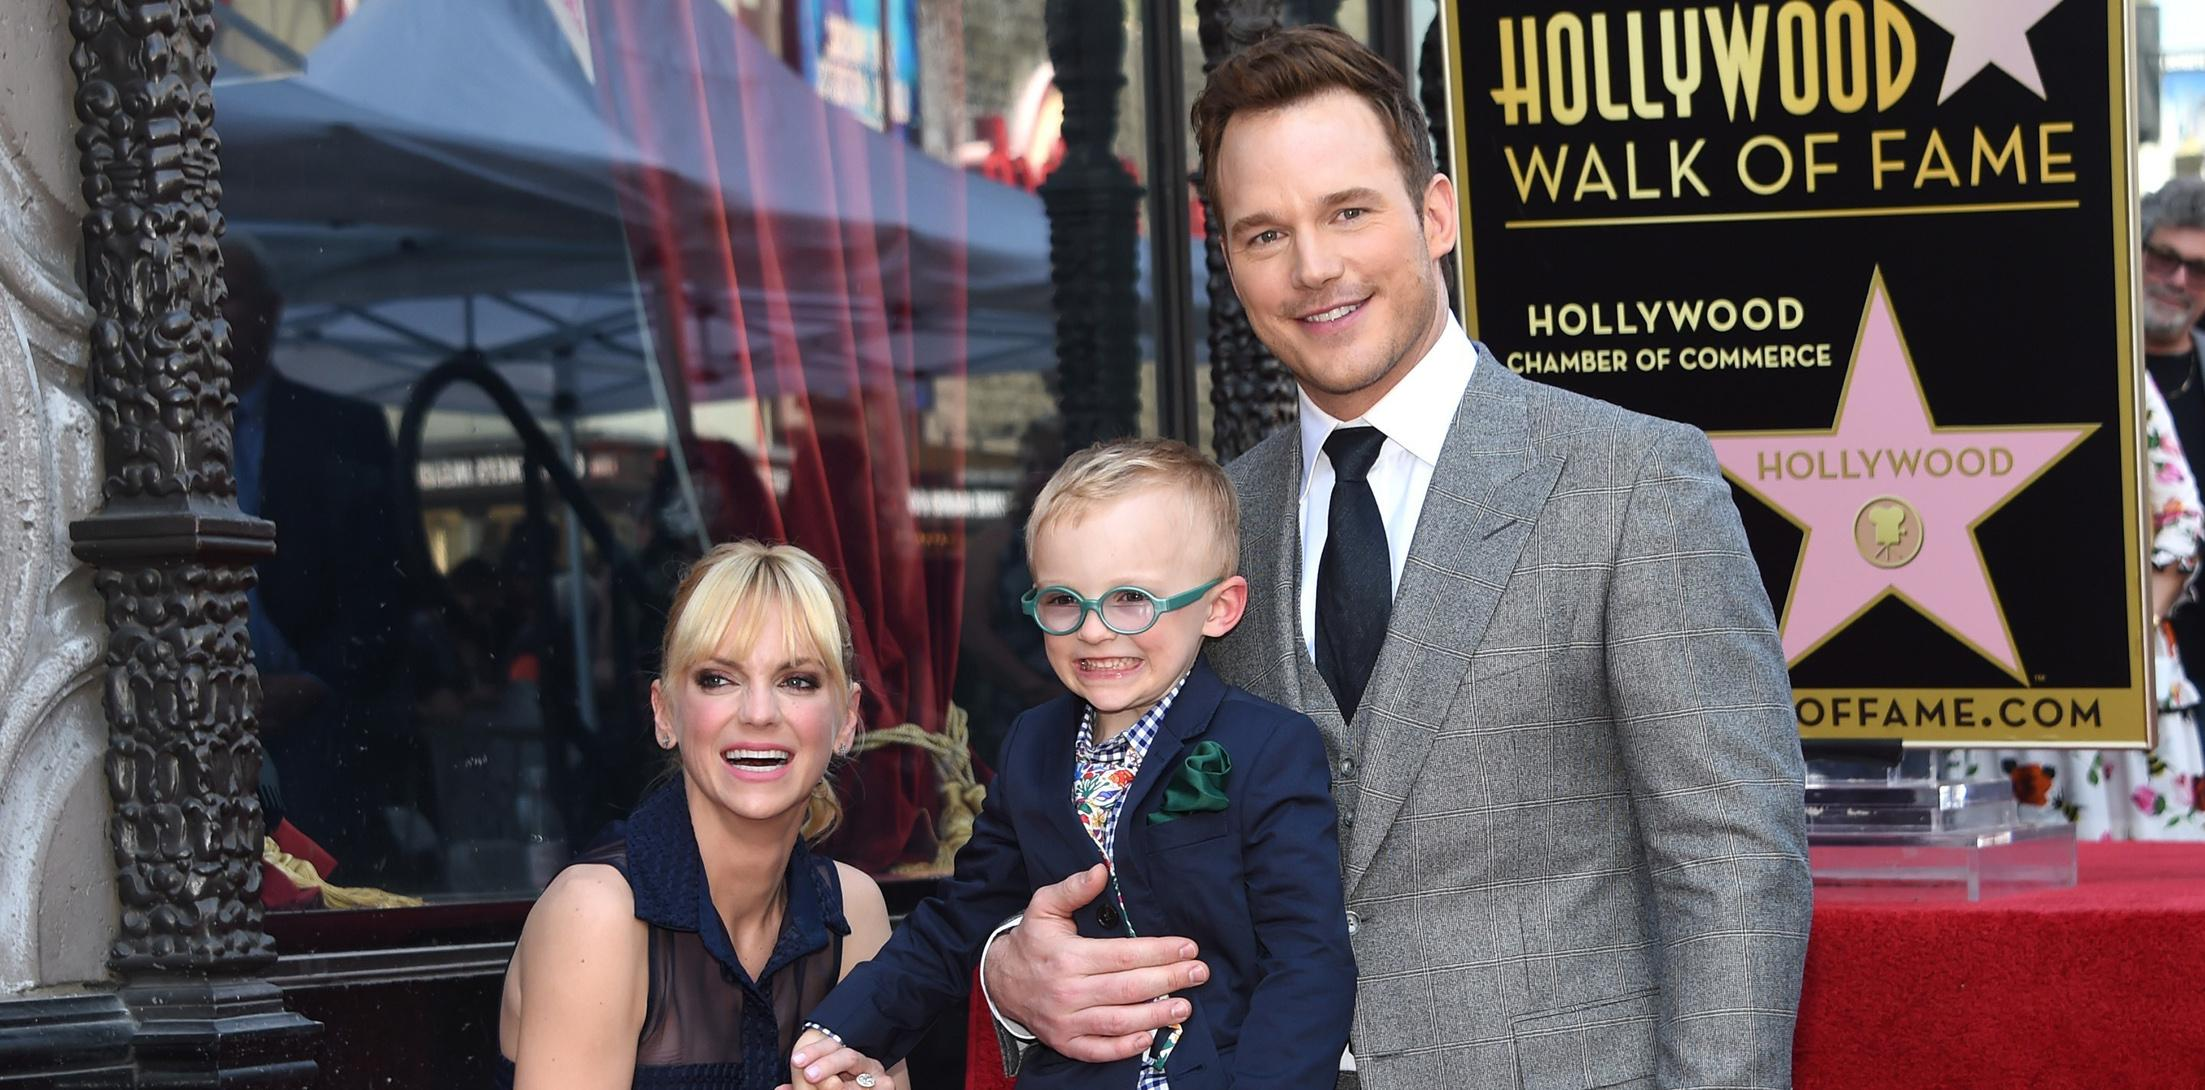 Chris Pratt and Anna Faris pose on the Walk of Fame after Chris recieved a star